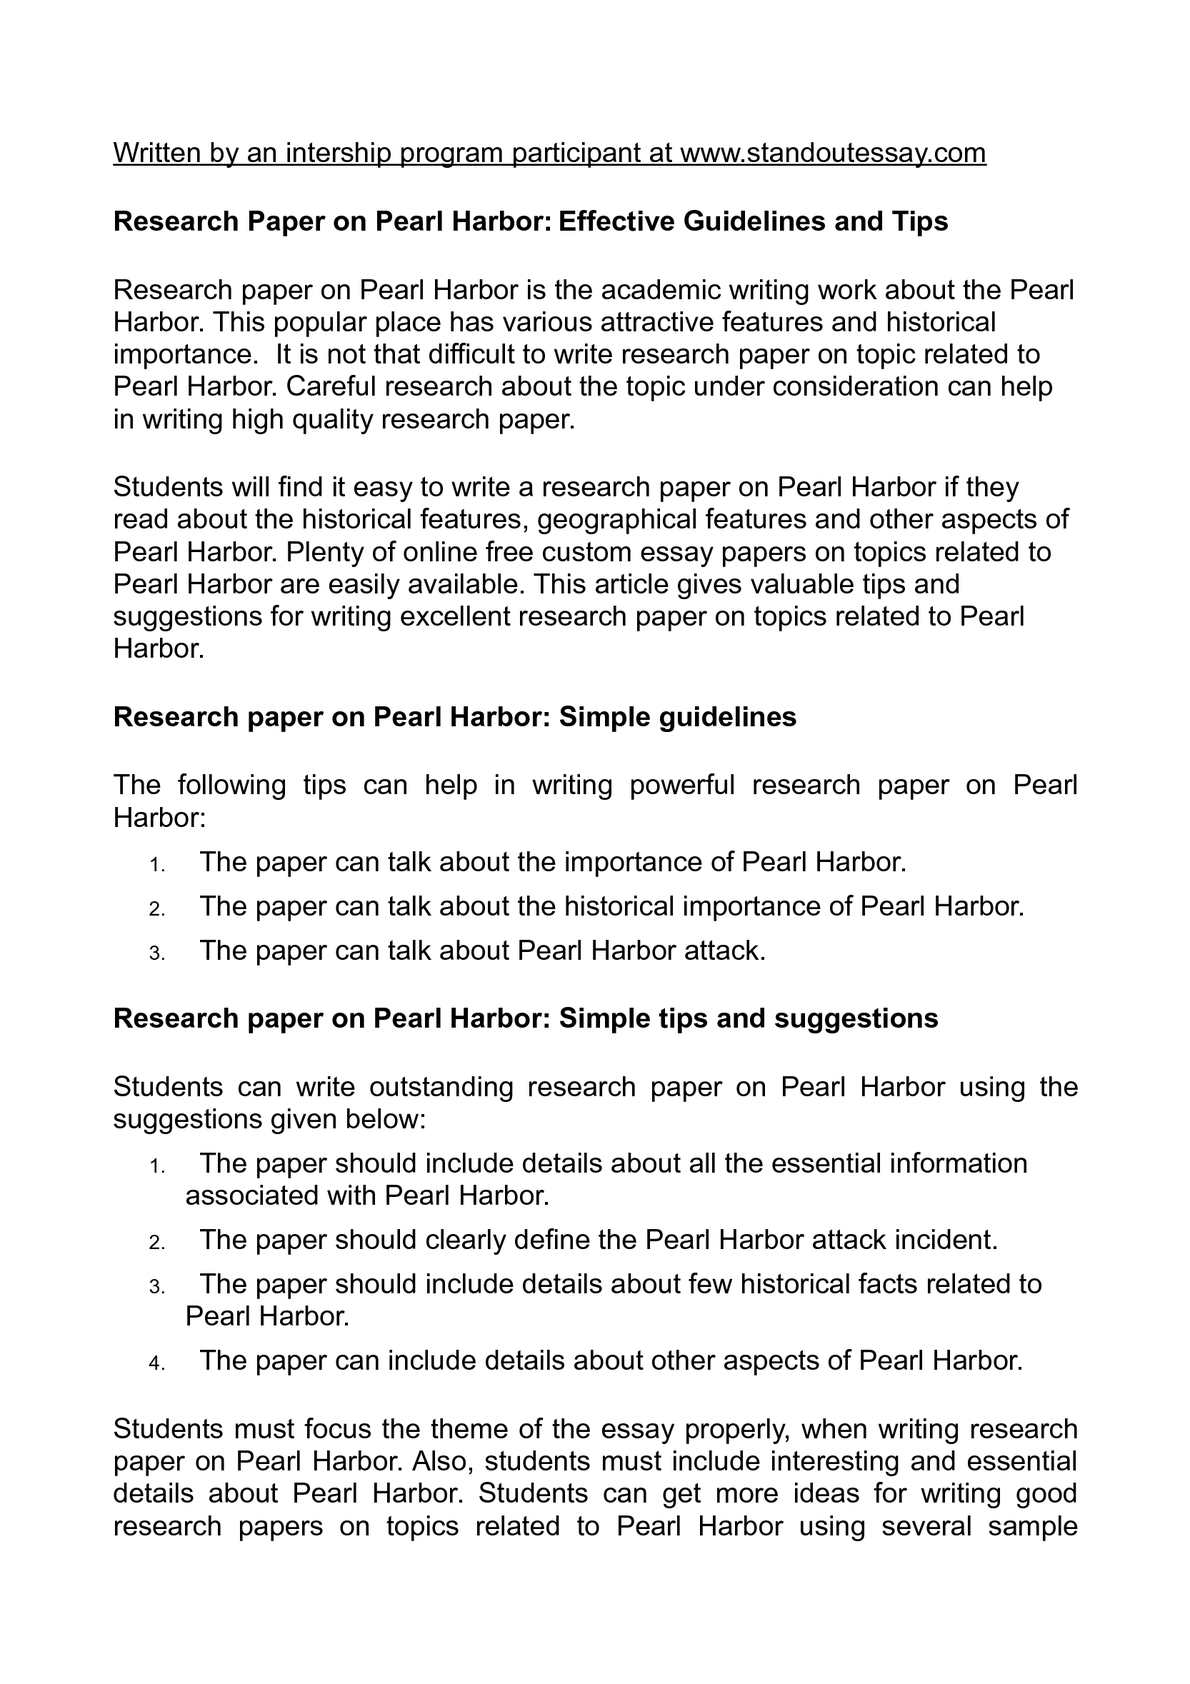 pearl harbor research paper thesis Related post of thesis statement for pearl harbor research paper steps in writing an essay pdf thesis statement for pearl harbor research paper political correctness persuasive essay argumentative essay on police brutality quote data analysis section of research paper jam and betty kaplun.